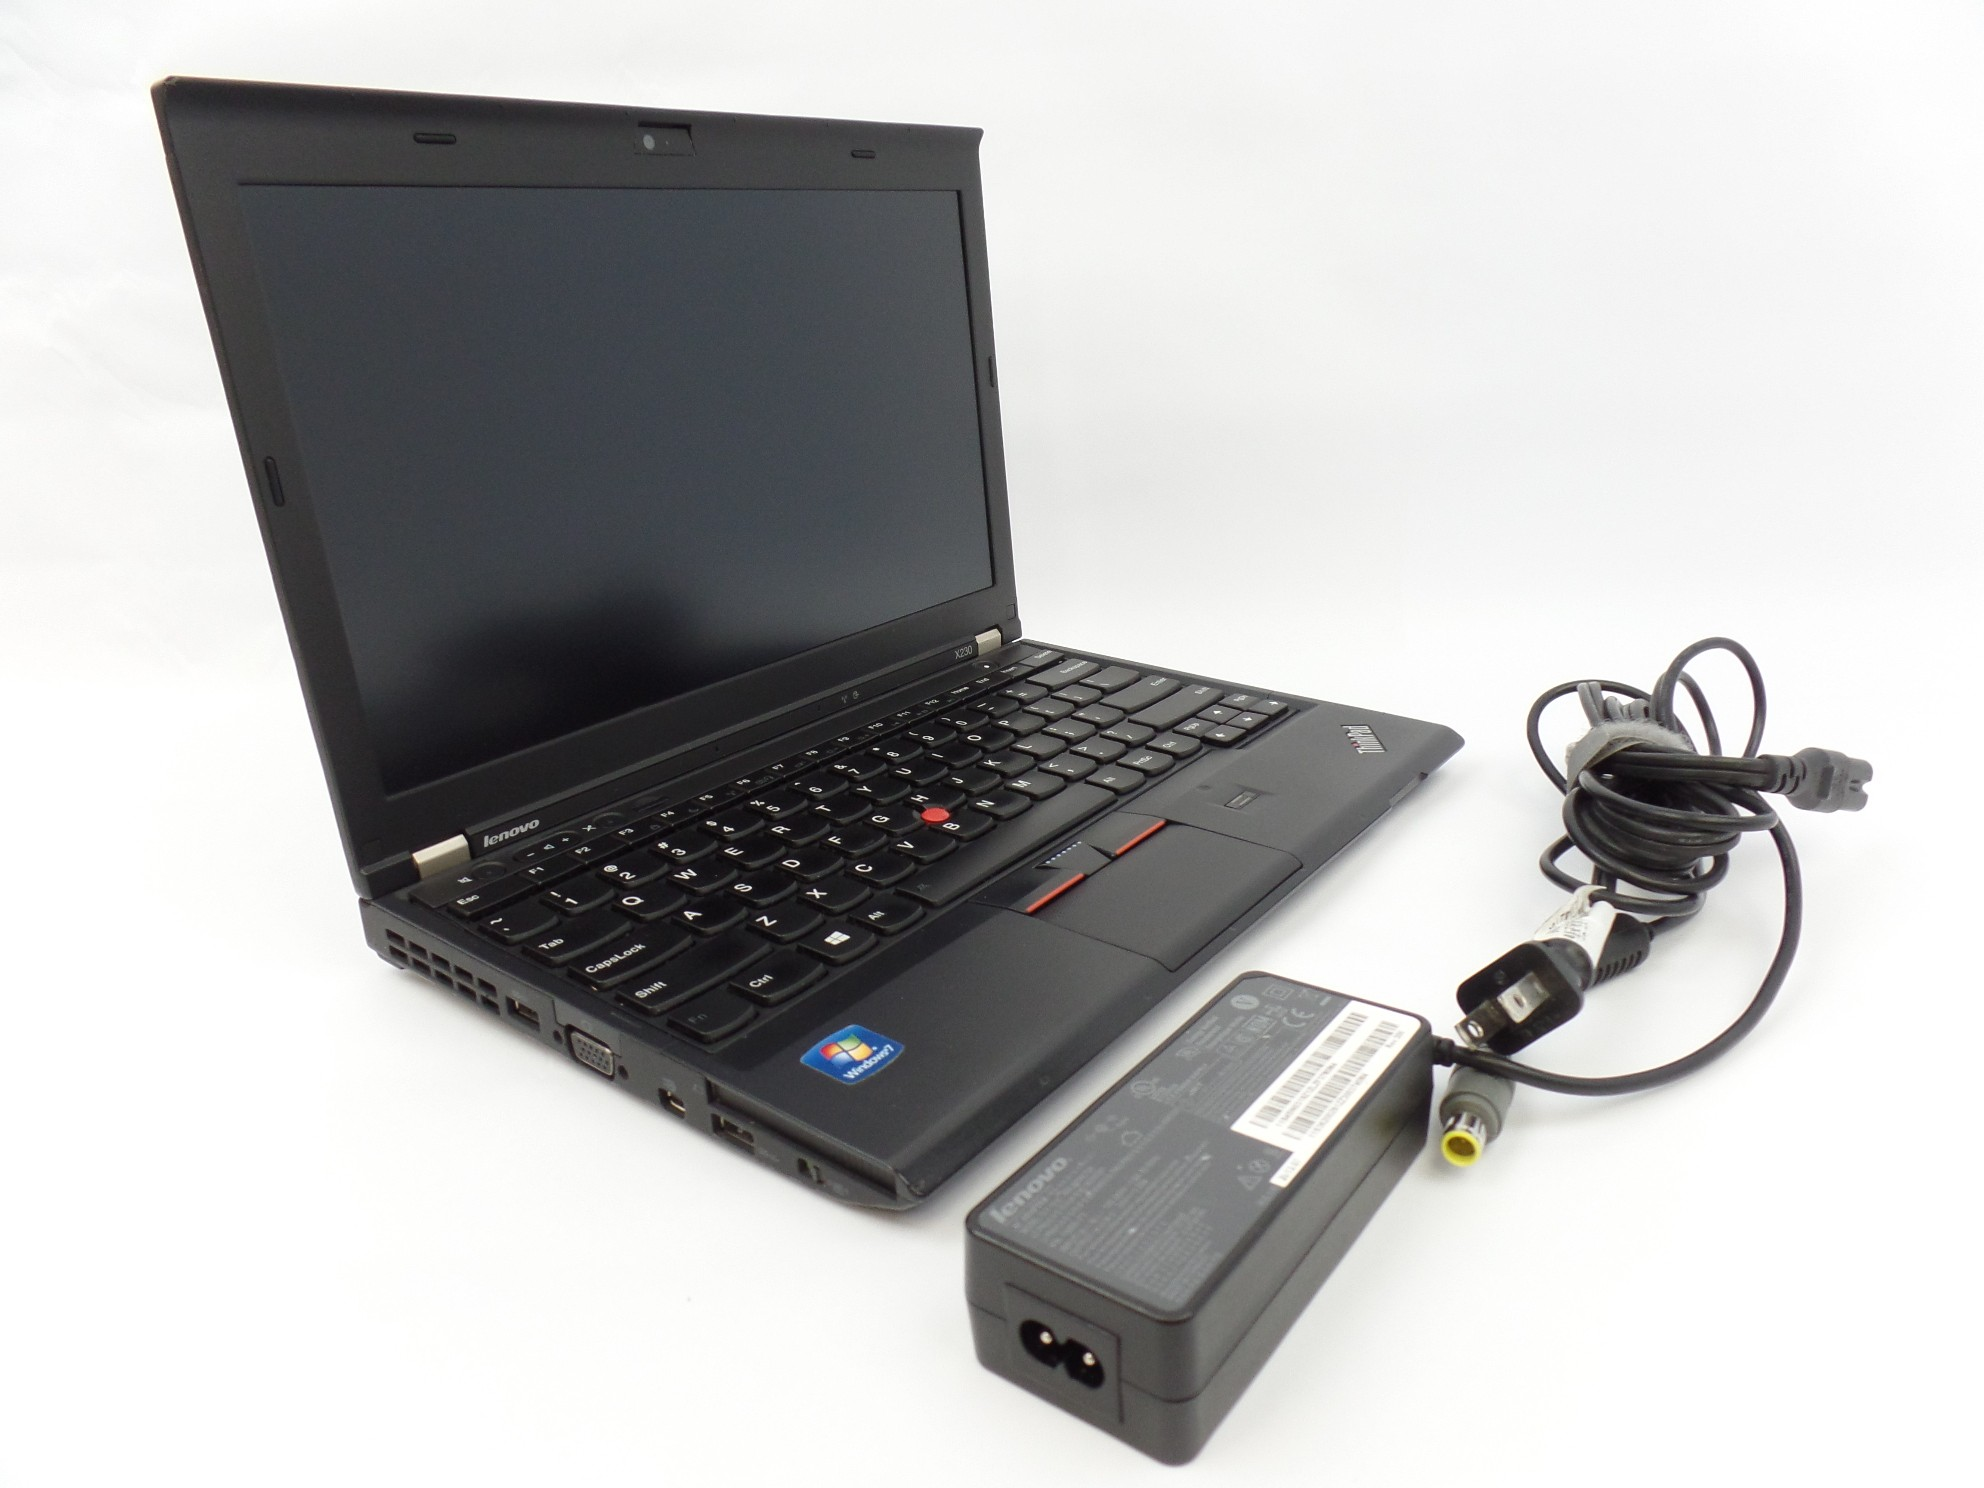 "Lenovo ThinkPad x230 12.5"" HD i5-3320M 2.6GHz 8GB 320GB HDD W7P Laptop 23252QU U"